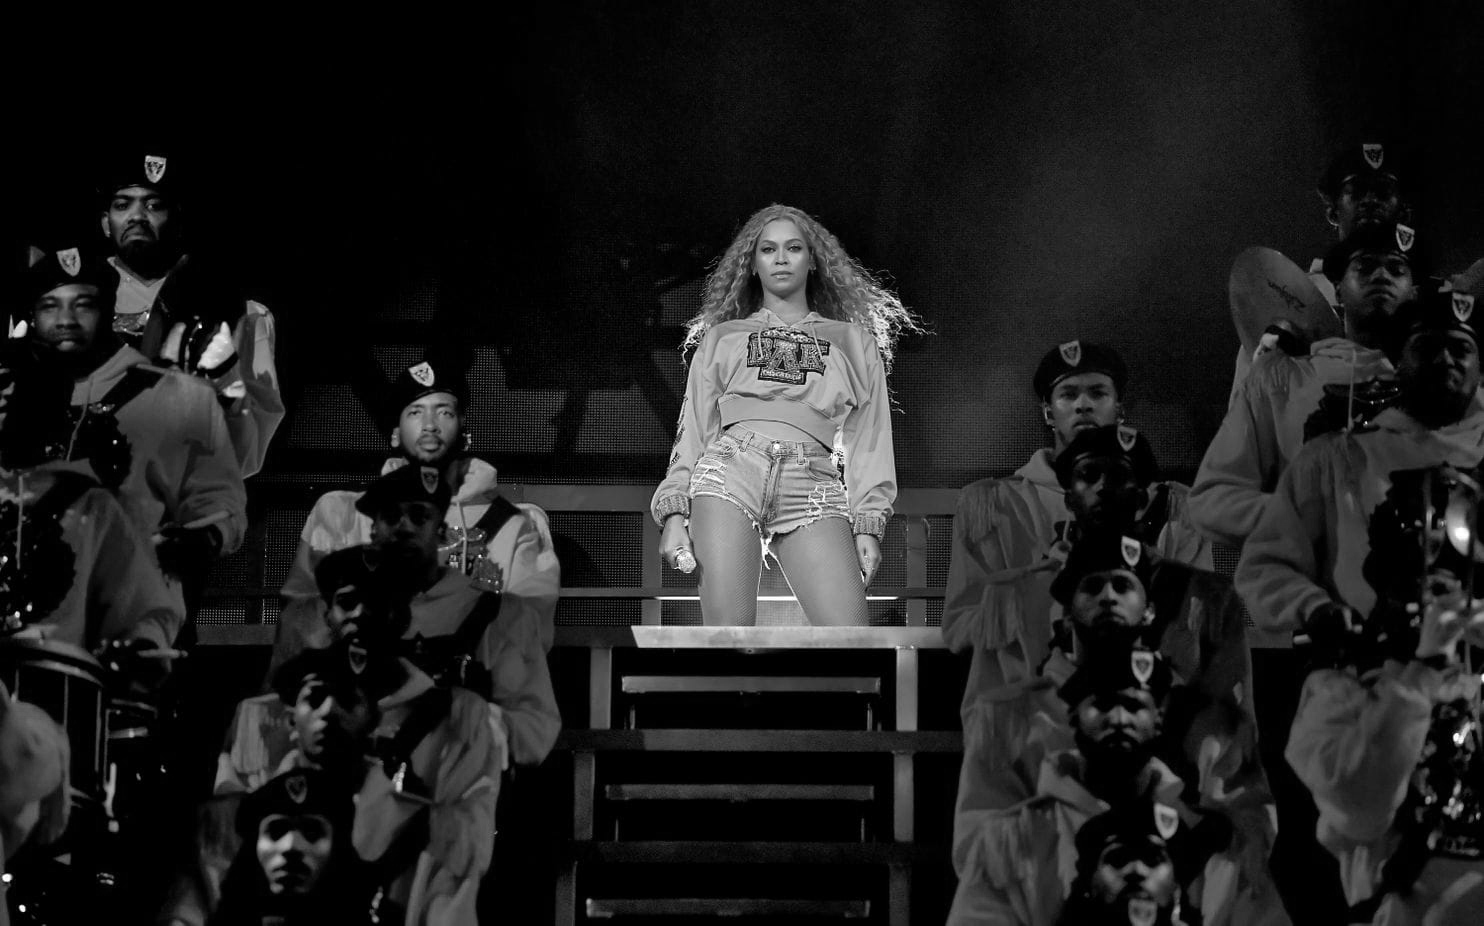 Homecoming gives a glimpse into the life of beloved celebrity, Beyonce